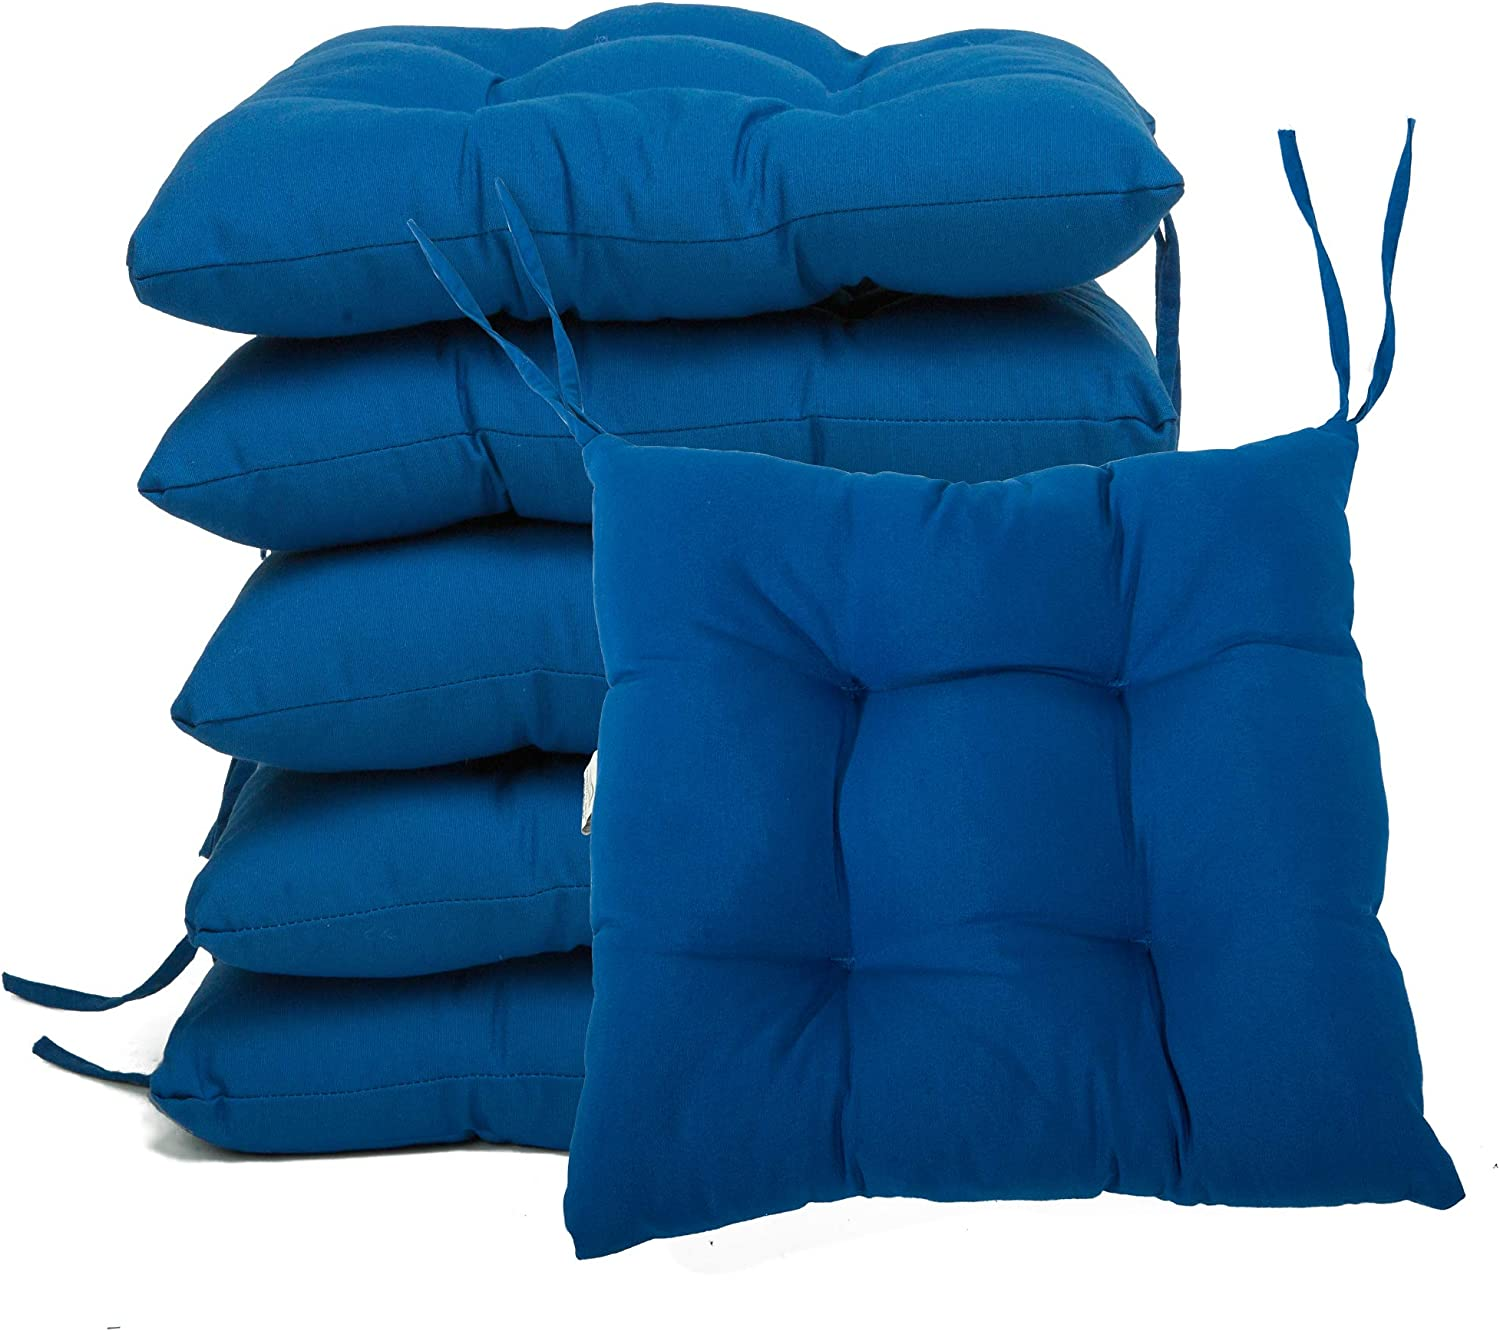 Comfortable BCASE Garden Bedroom Pack of 6 Seat and Chair Cushions 38x38cm Terrace Easy to Clean Living Room Blue Patio Etc Resistant Fiber Filling for Kitchen Polyster Cover